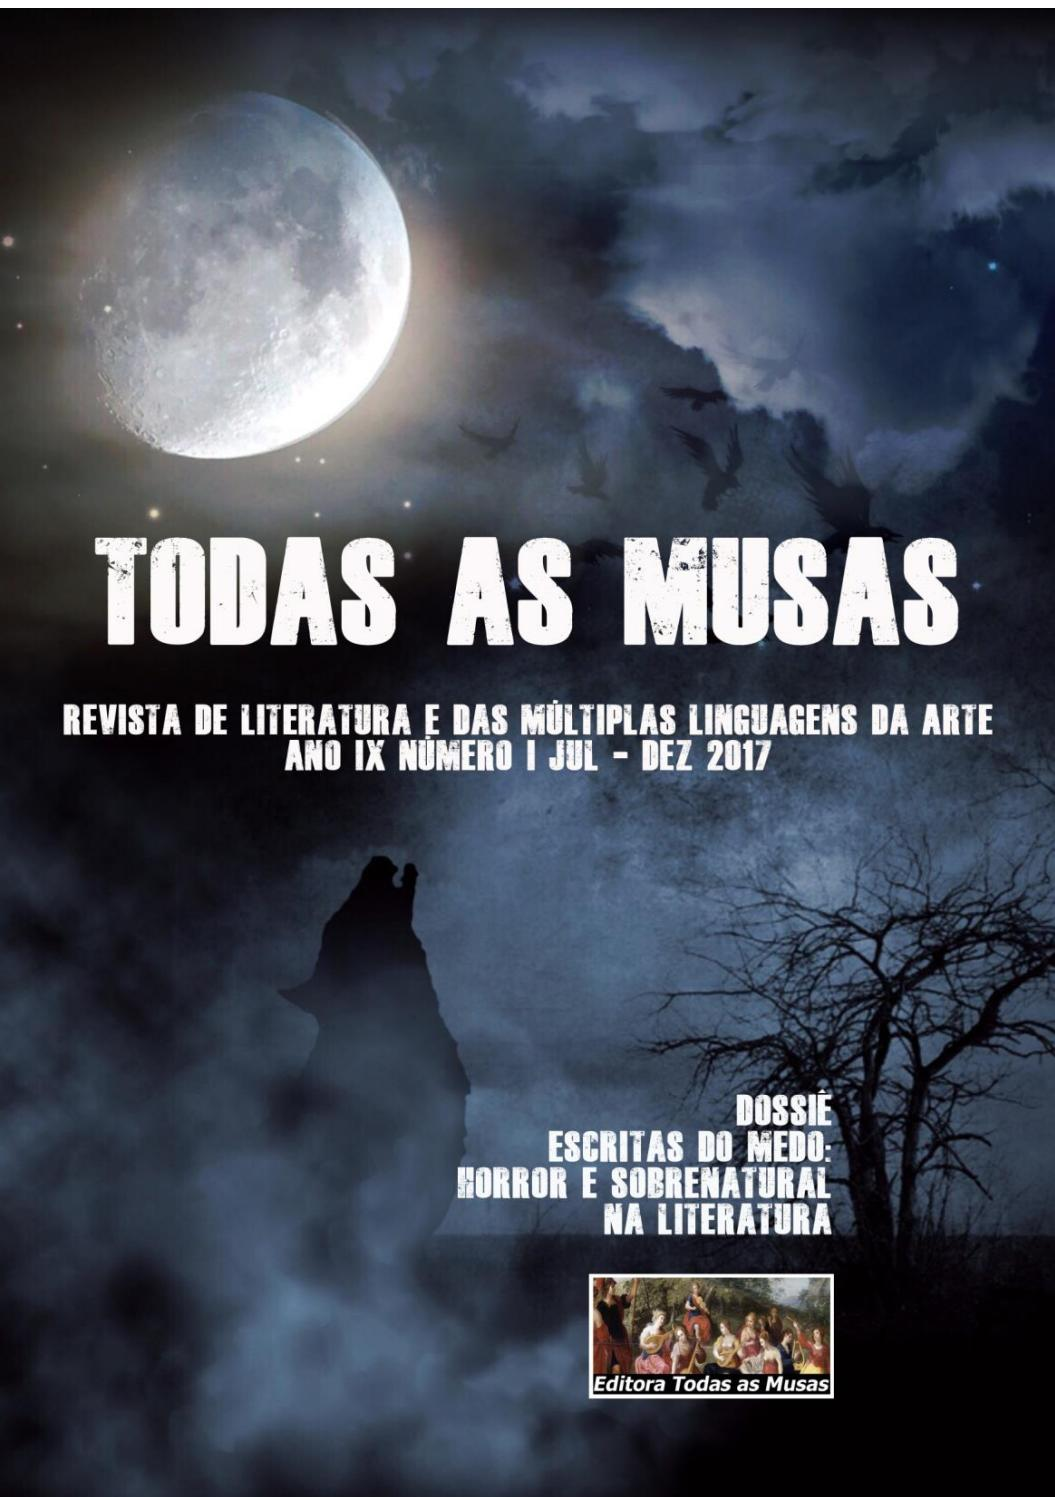 Todas as musas ano 09 nmero 01 jul dez 2017 by flavio botton todas as musas ano 09 nmero 01 jul dez 2017 by flavio botton issuu fandeluxe Images